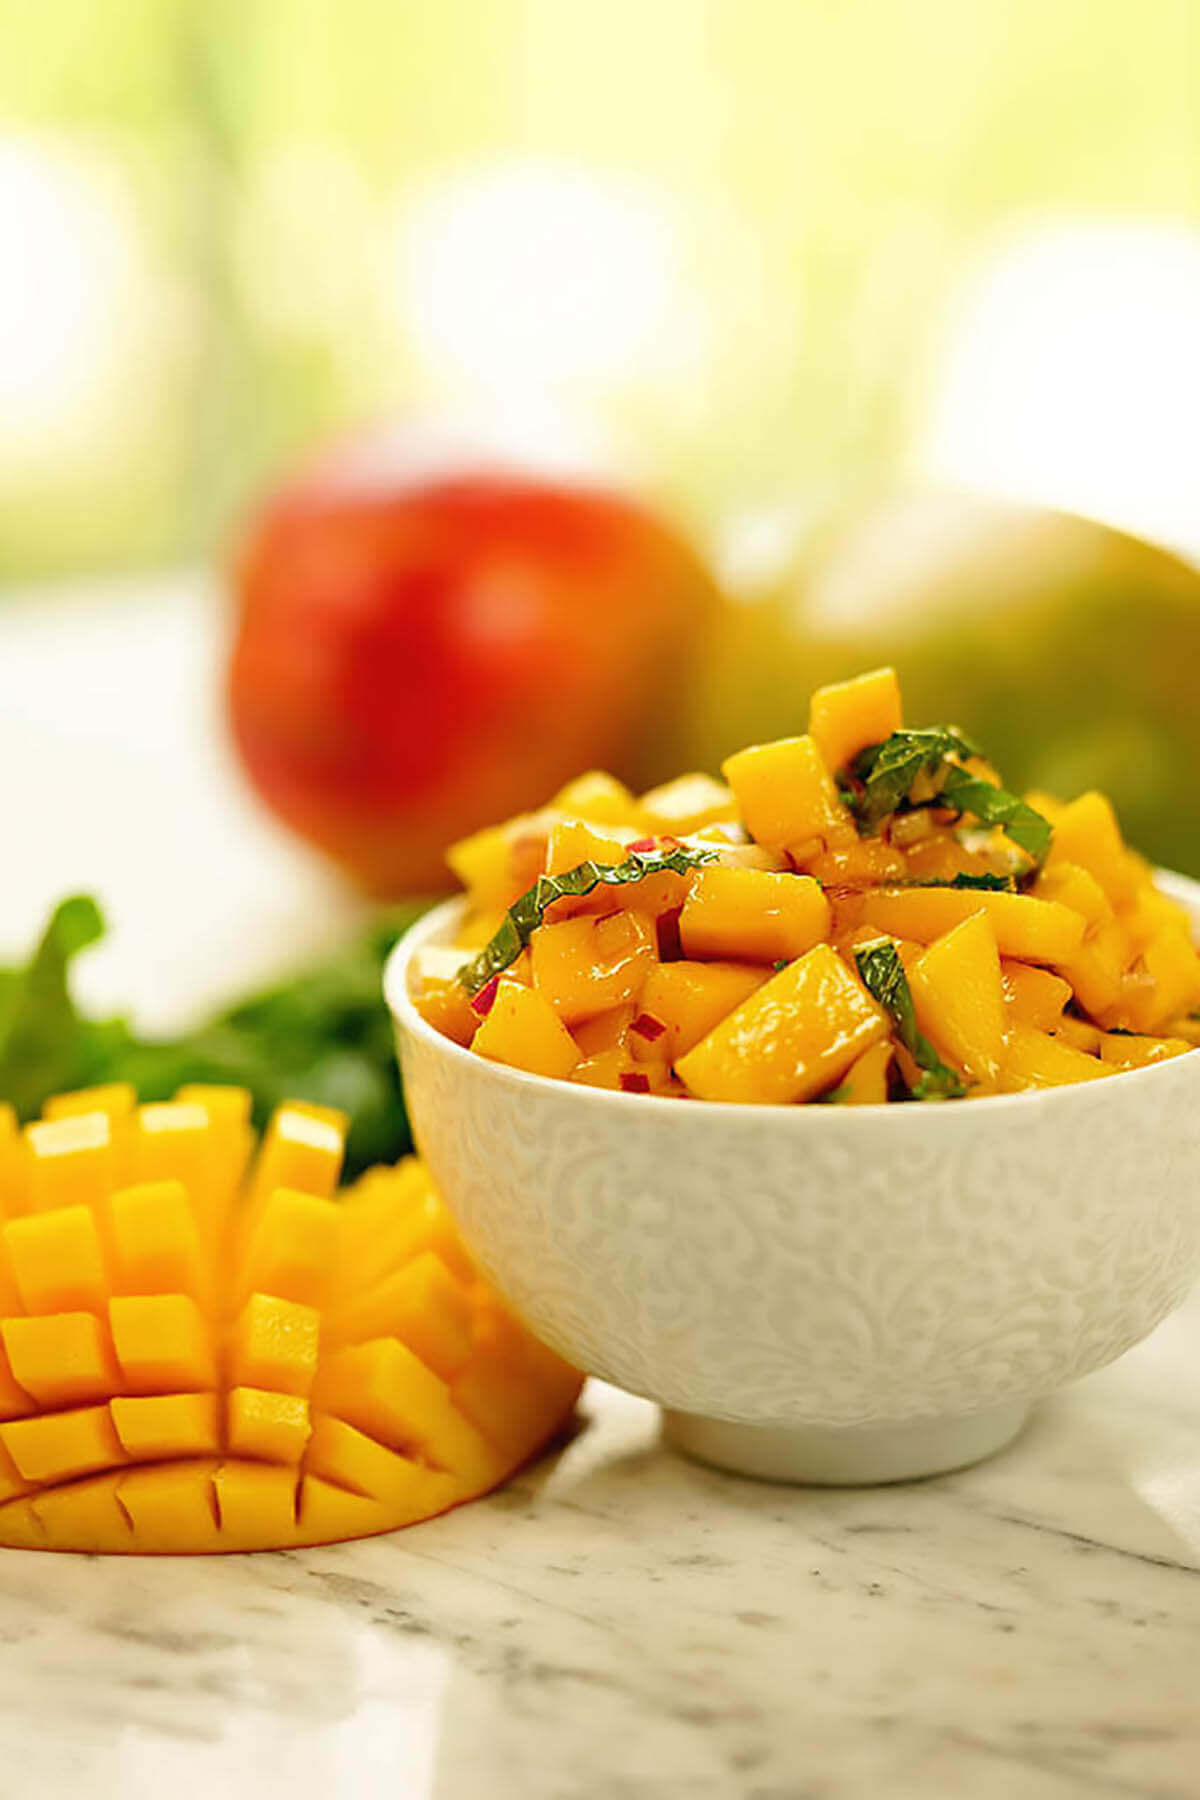 Spicy mango salsa in bowl with more diced mango alongside.